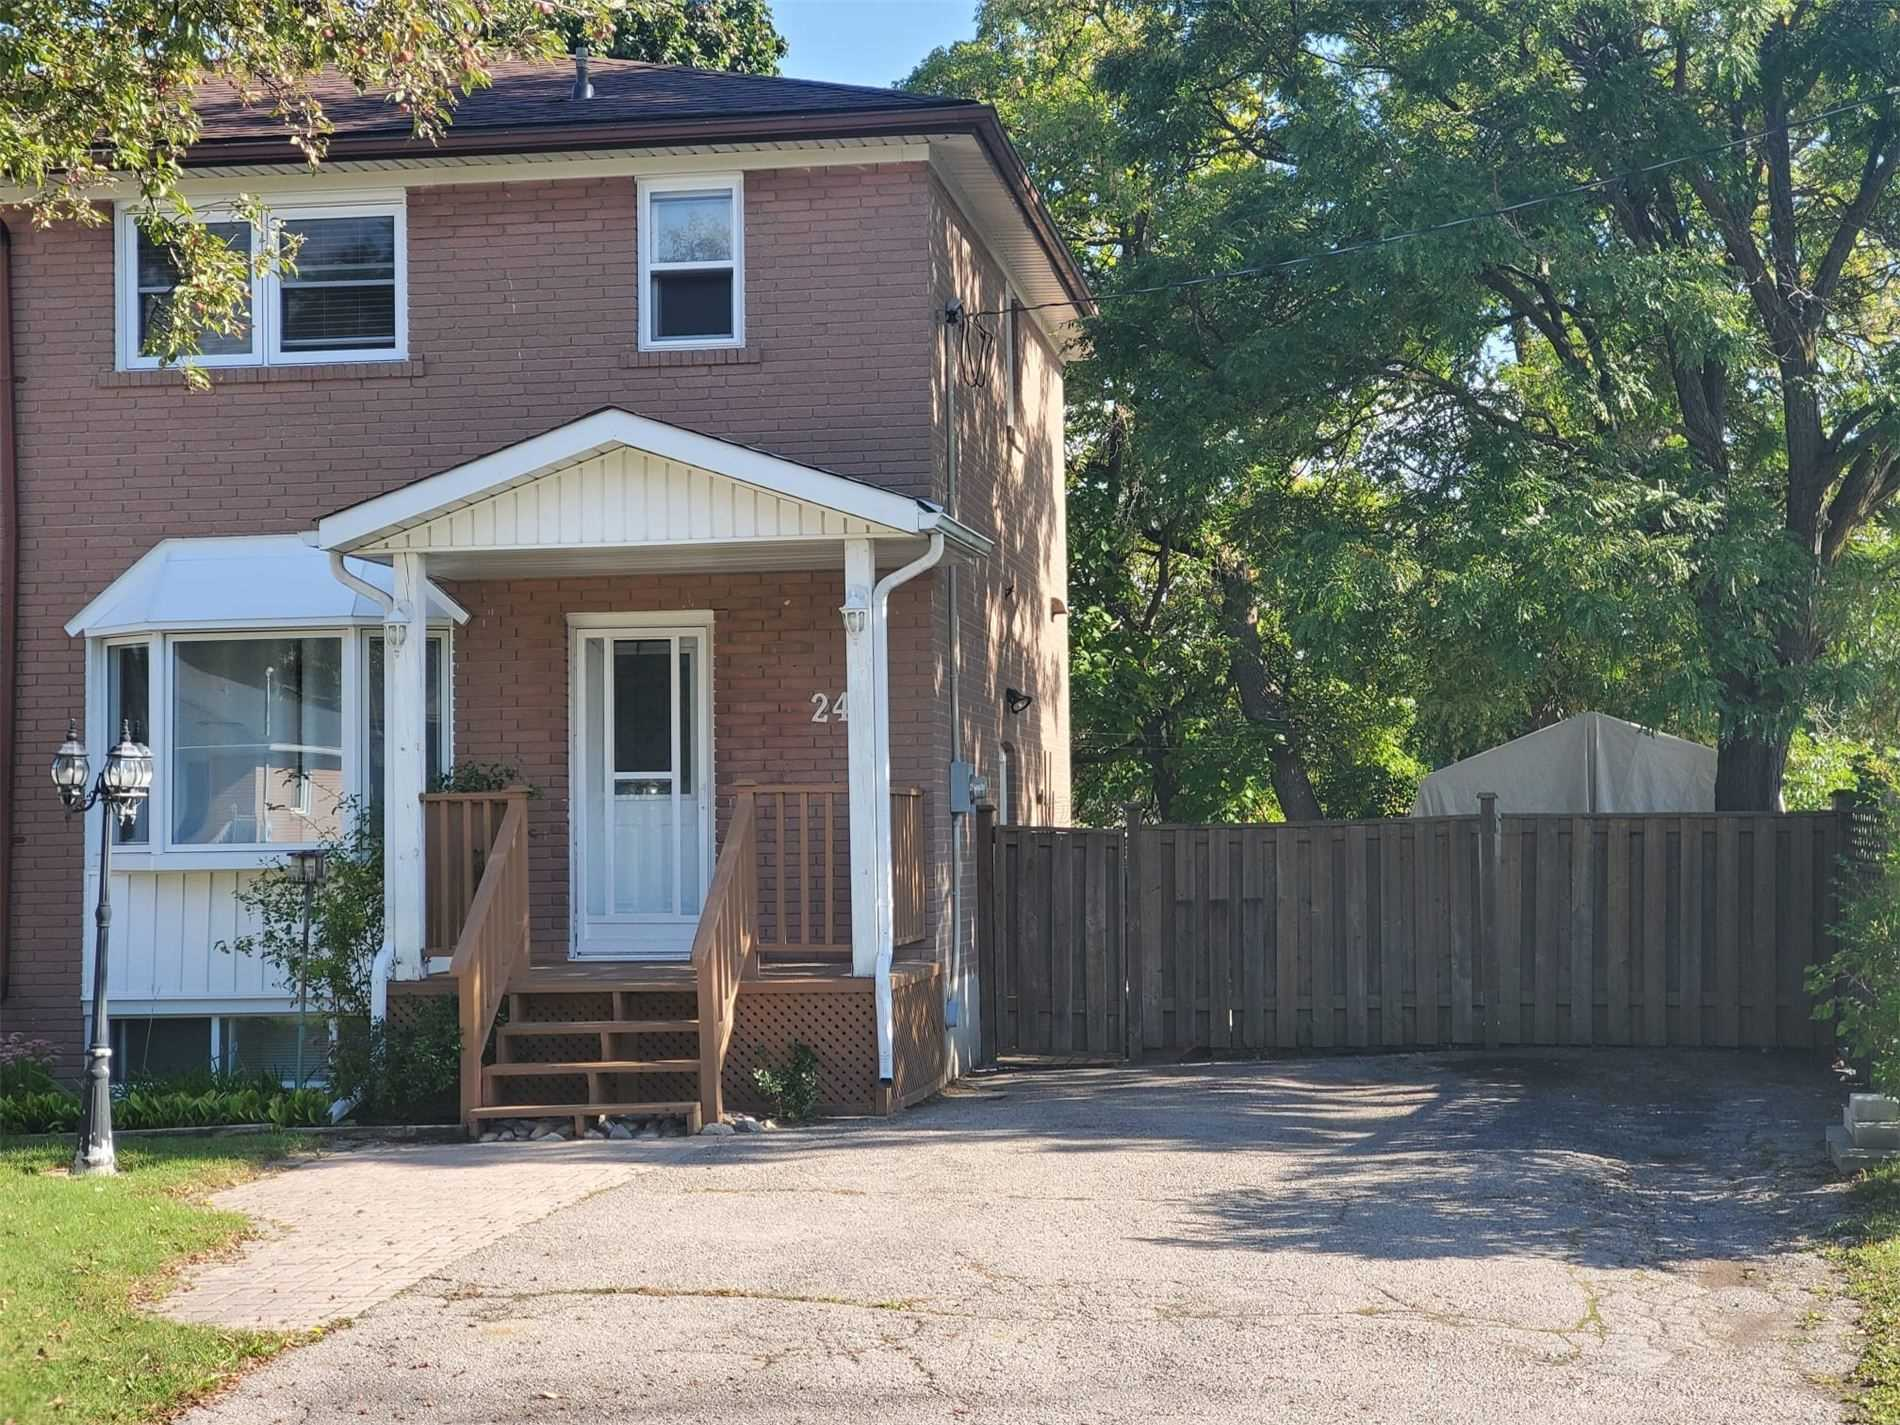 Semi-Detached For Lease In Newmarket , 3 Bedrooms Bedrooms, ,2 BathroomsBathrooms,Semi-Detached,For Lease,Septonne